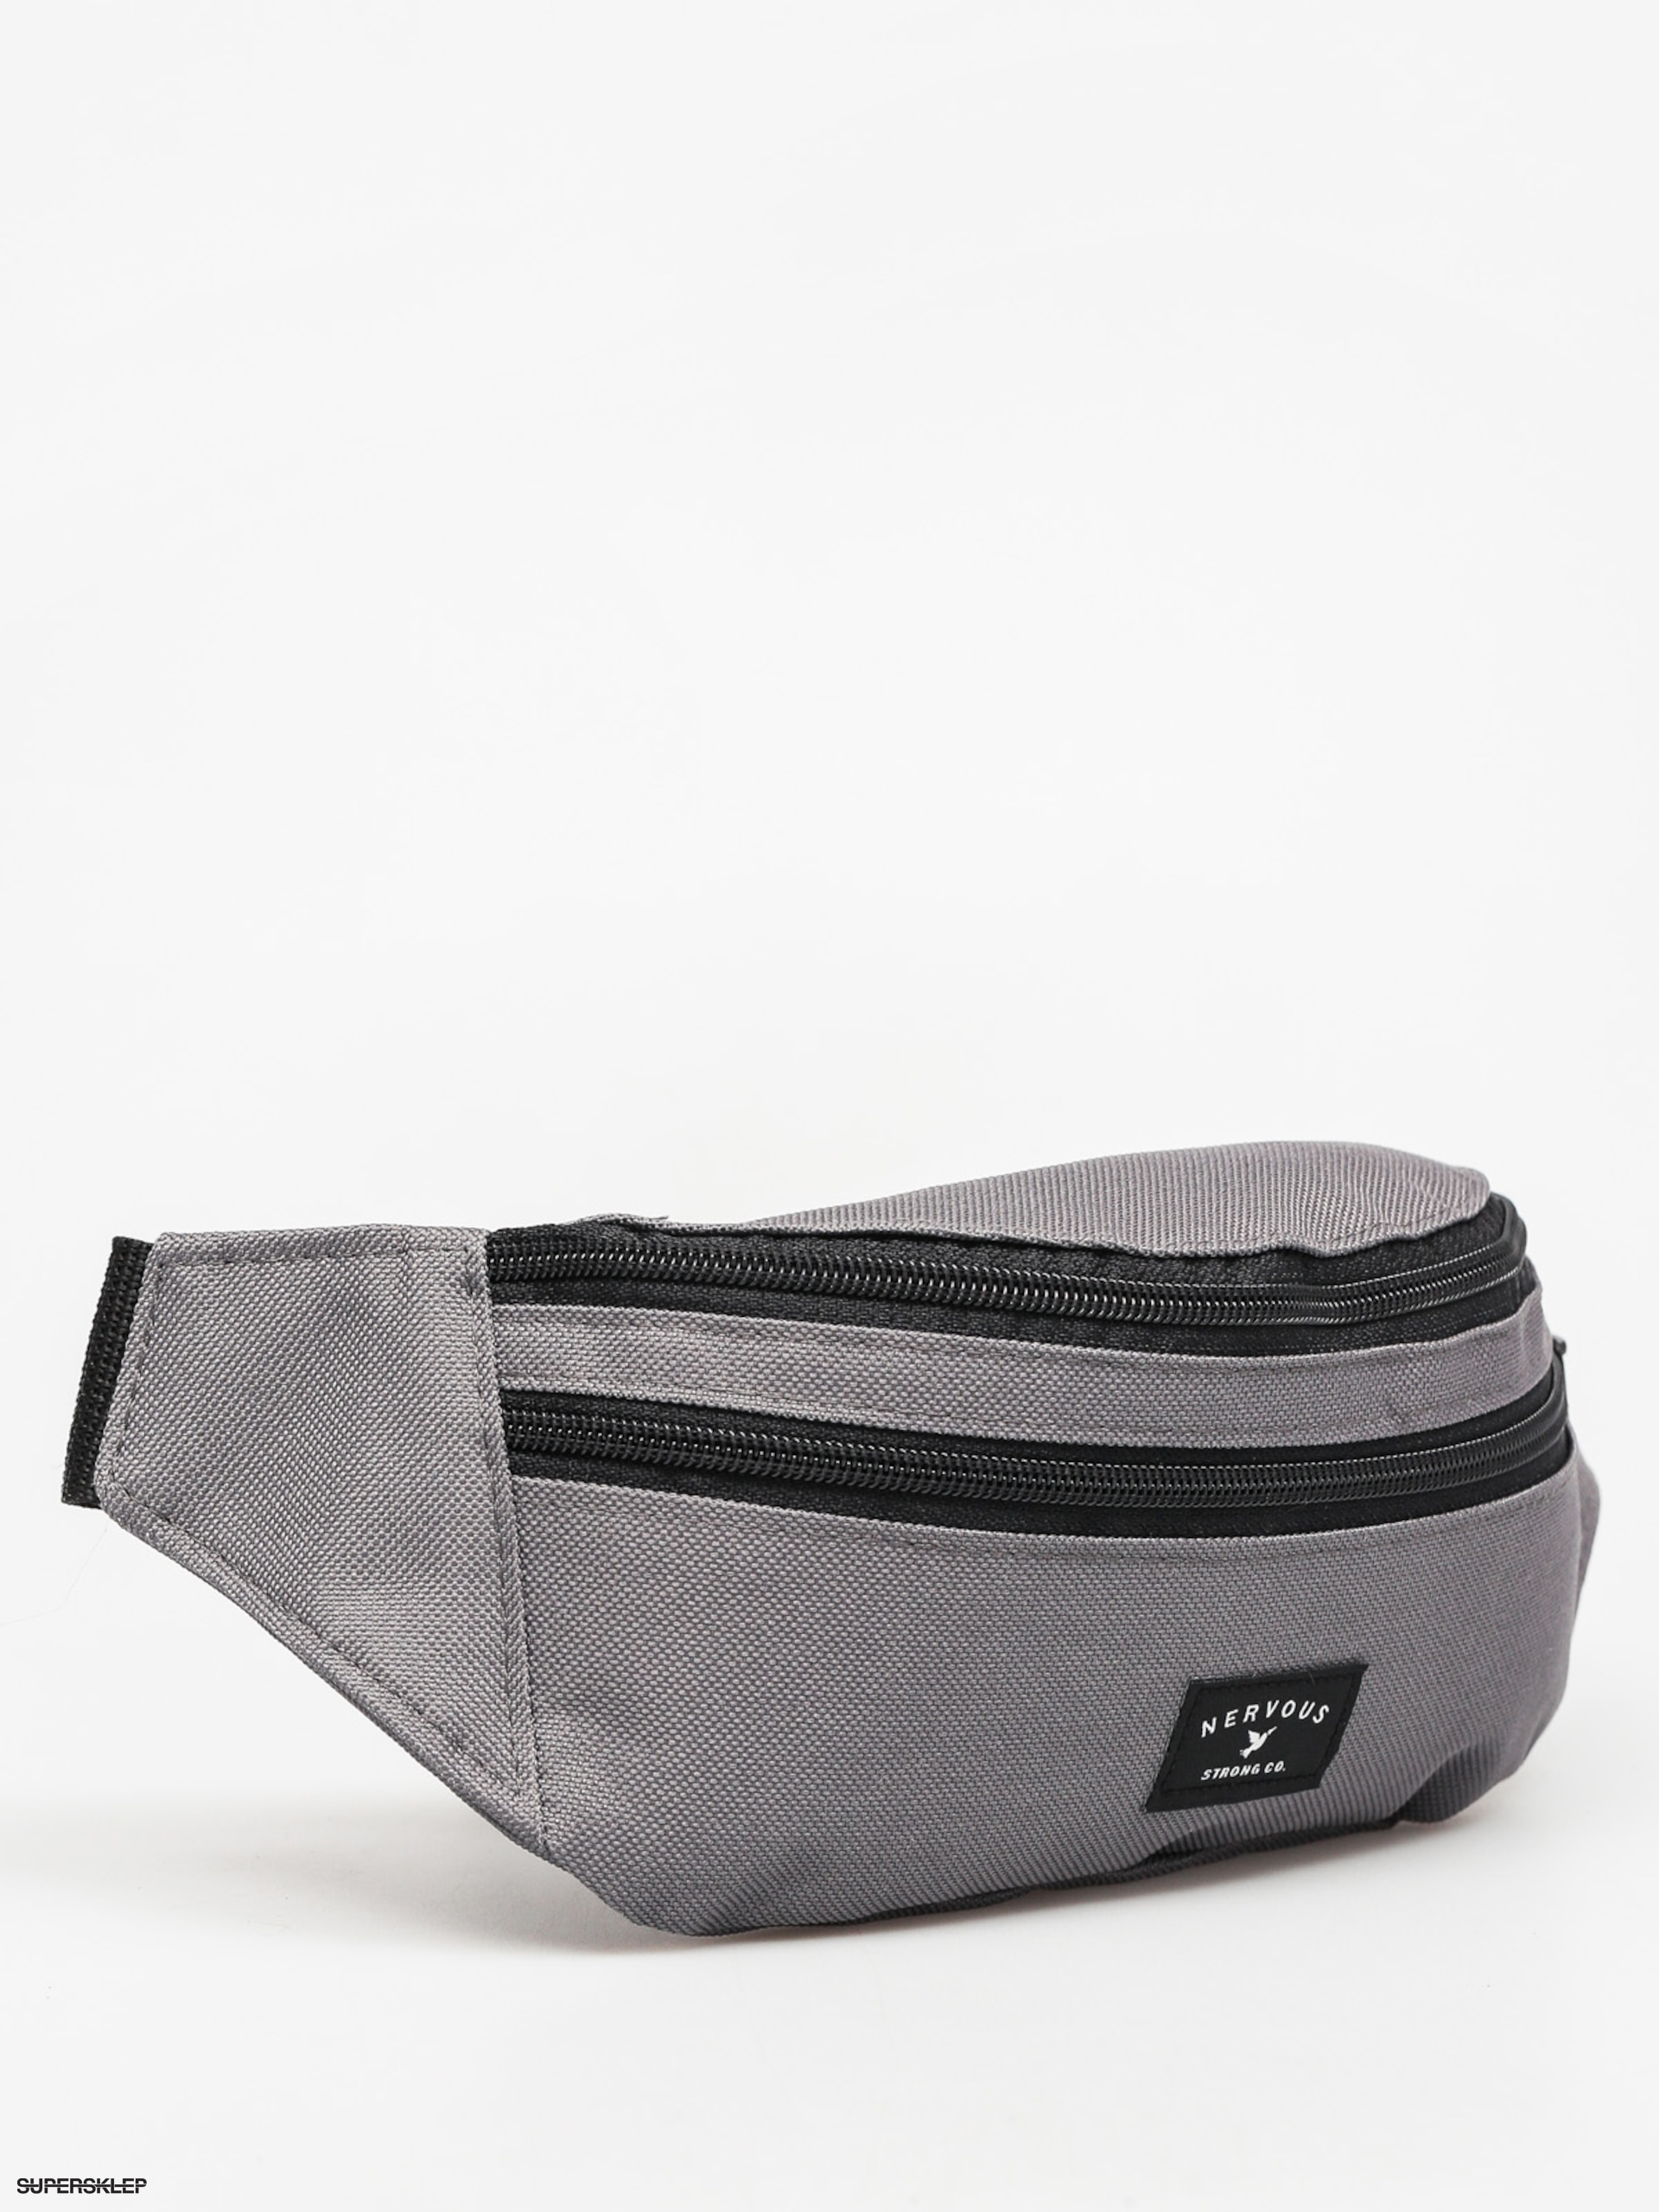 Nerka Nervous Brand (grey)